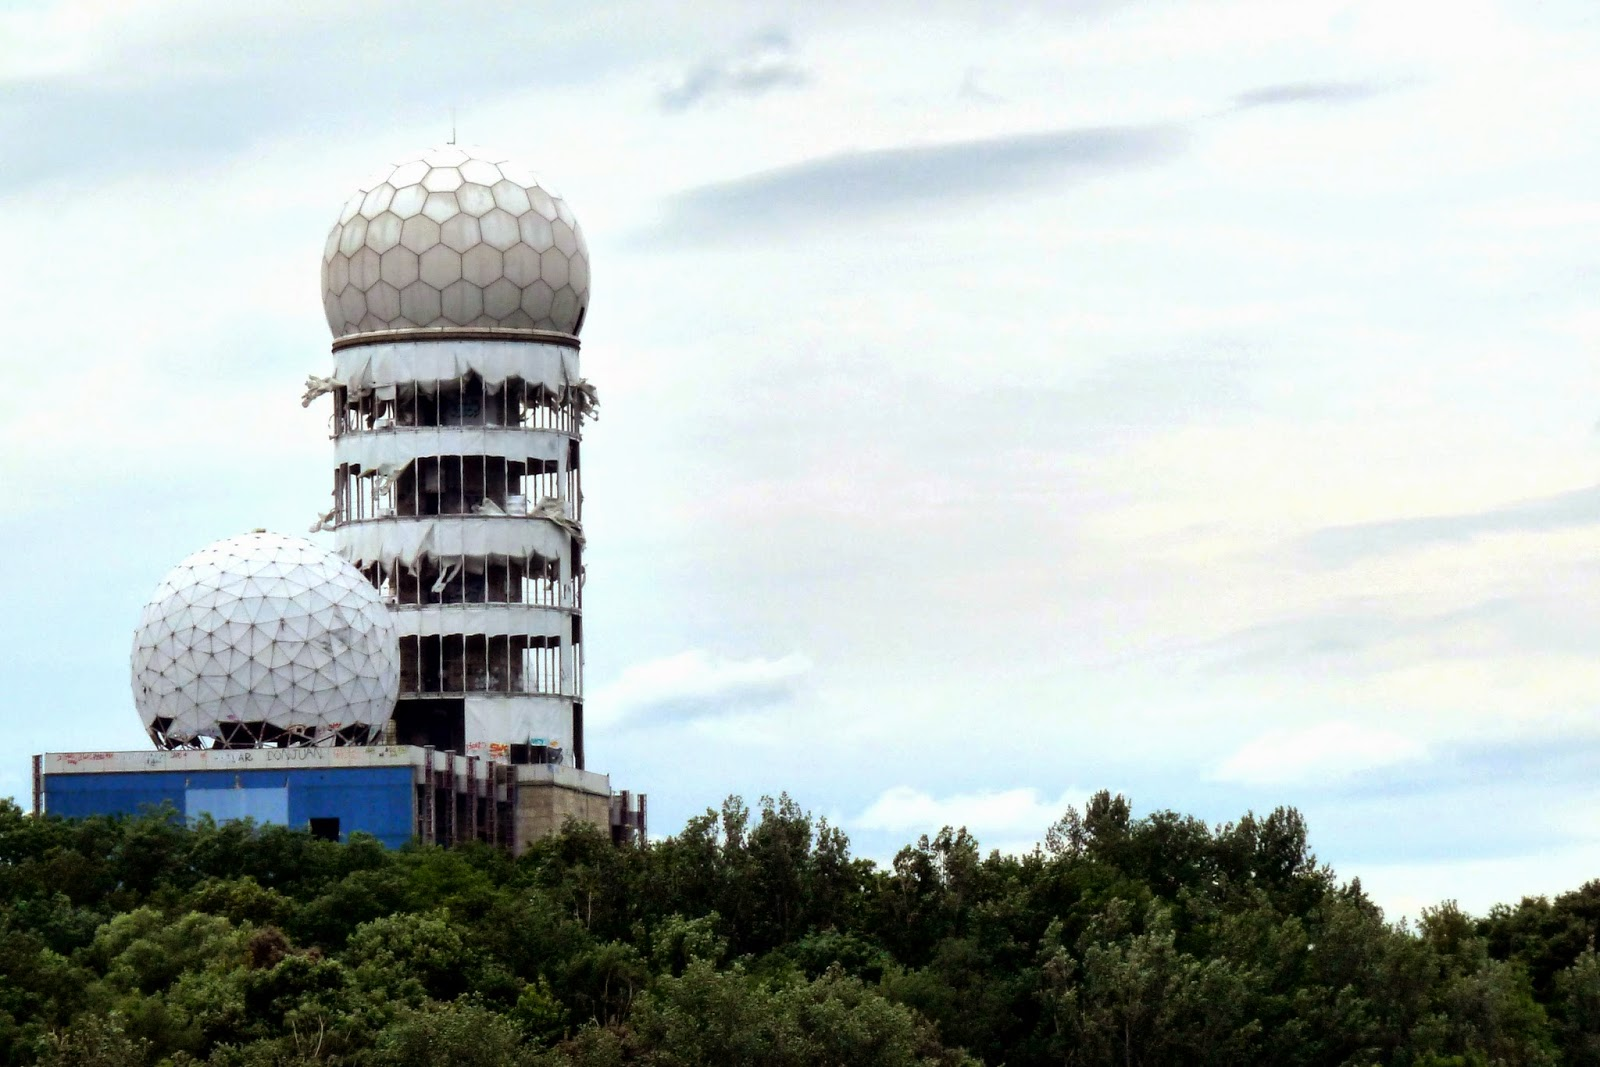 field-station-berlin-teufelsberg-abandoned-nsa-spy-station-1020633